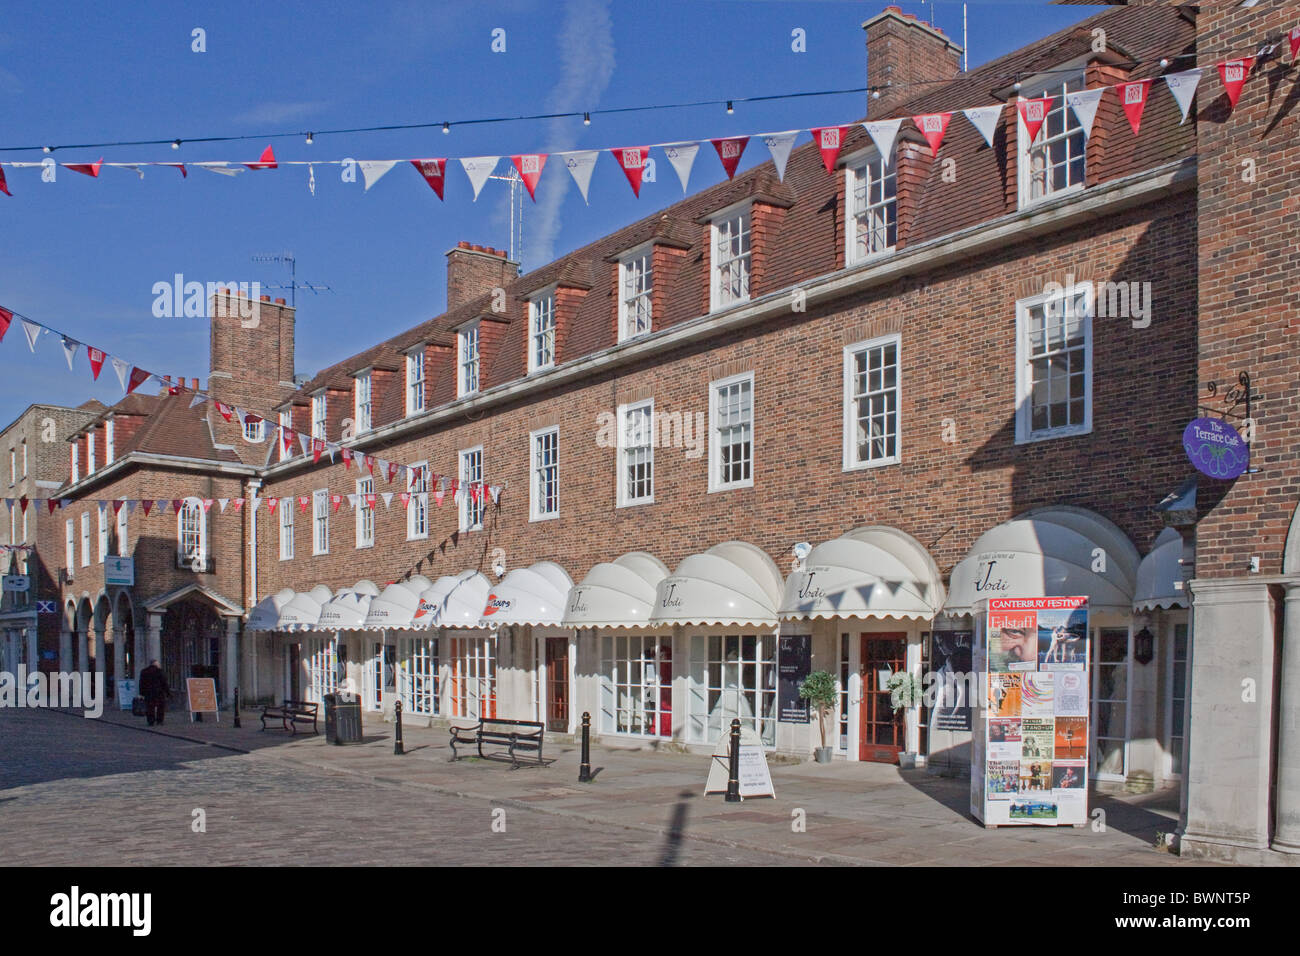 A row of shops in Burgate, Canterbury, Kent - Stock Image